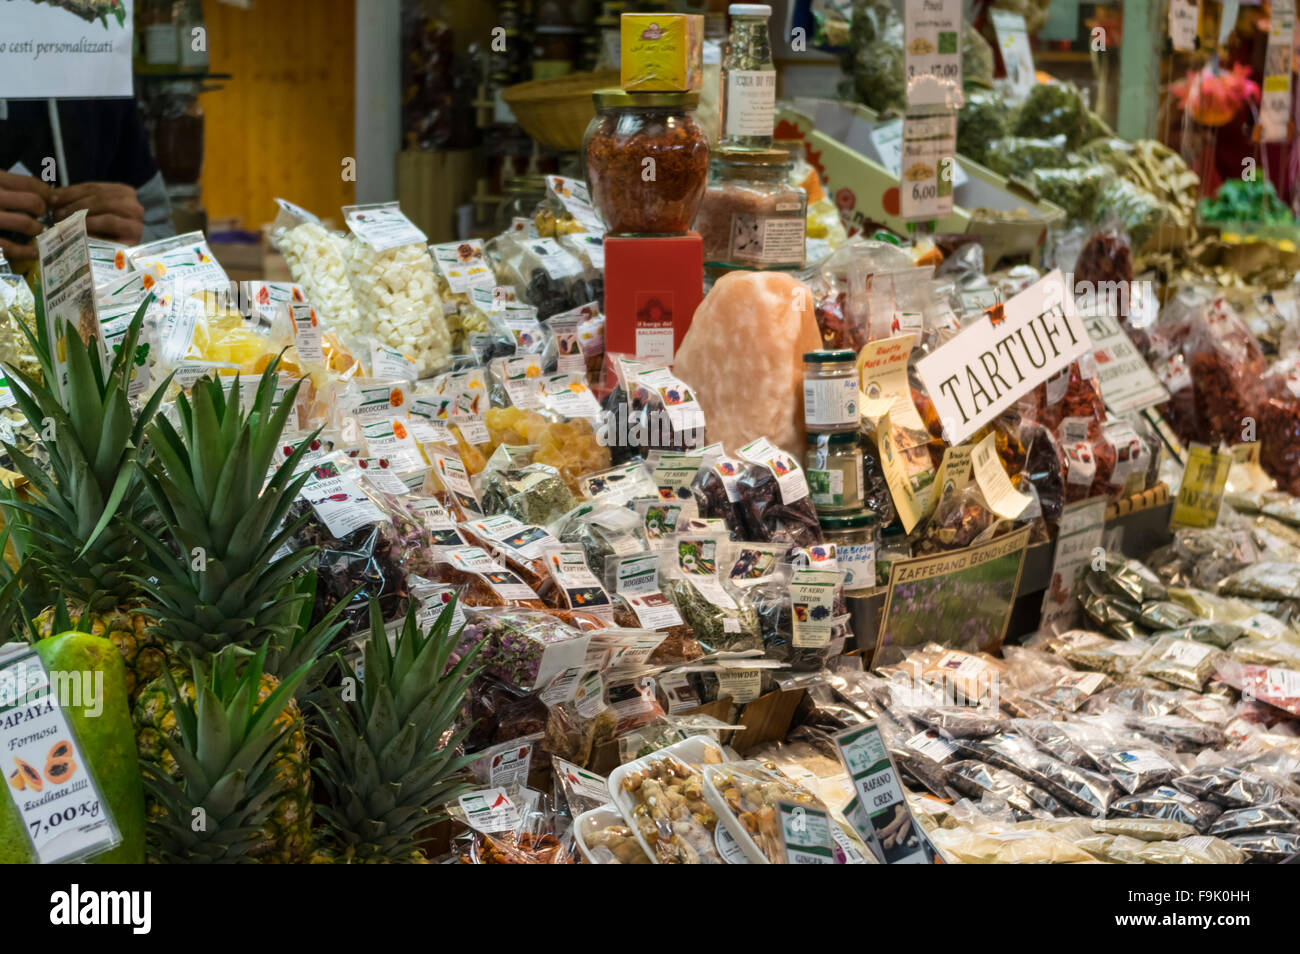 Various spices and teas on sale at the Mercato Orientale, one of the largest permanent food markets in Genova, Liguria, - Stock Image